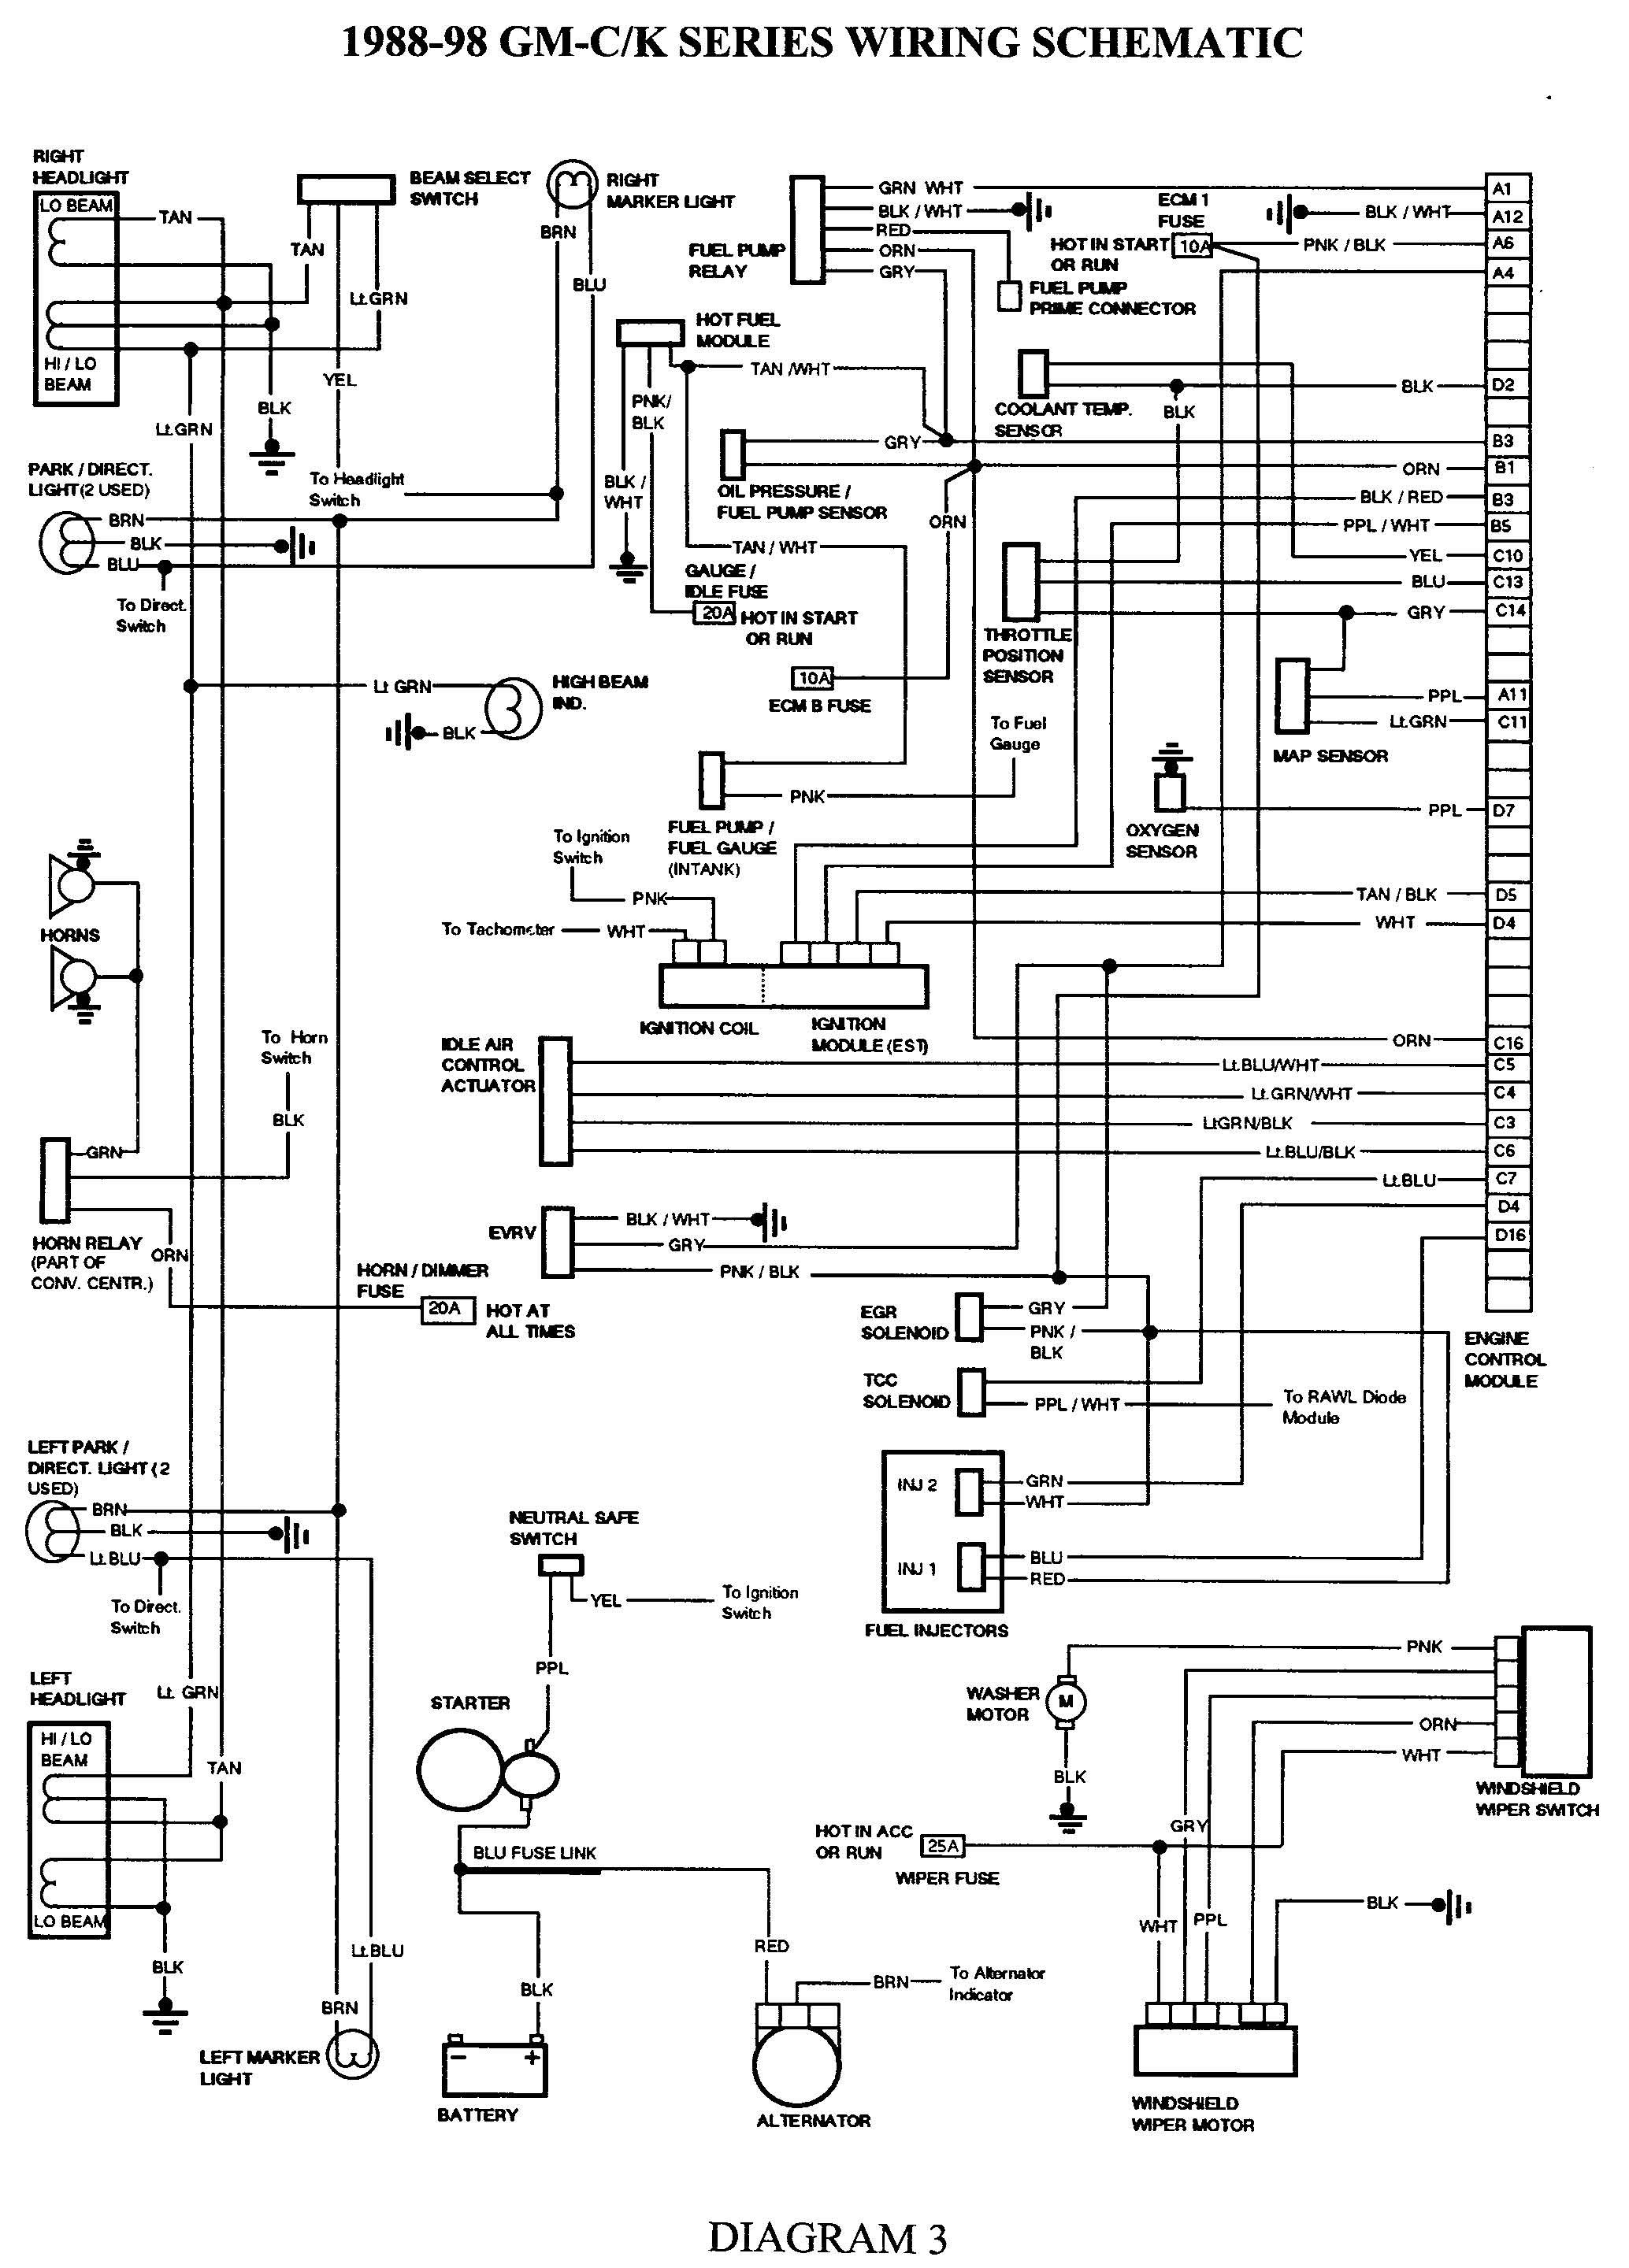 b2f2e5dbdc07dada83ef514f6d4ce3d4 electric wiring diagram instrument panel auto repair Basic Electrical Wiring Diagrams at pacquiaovsvargaslive.co